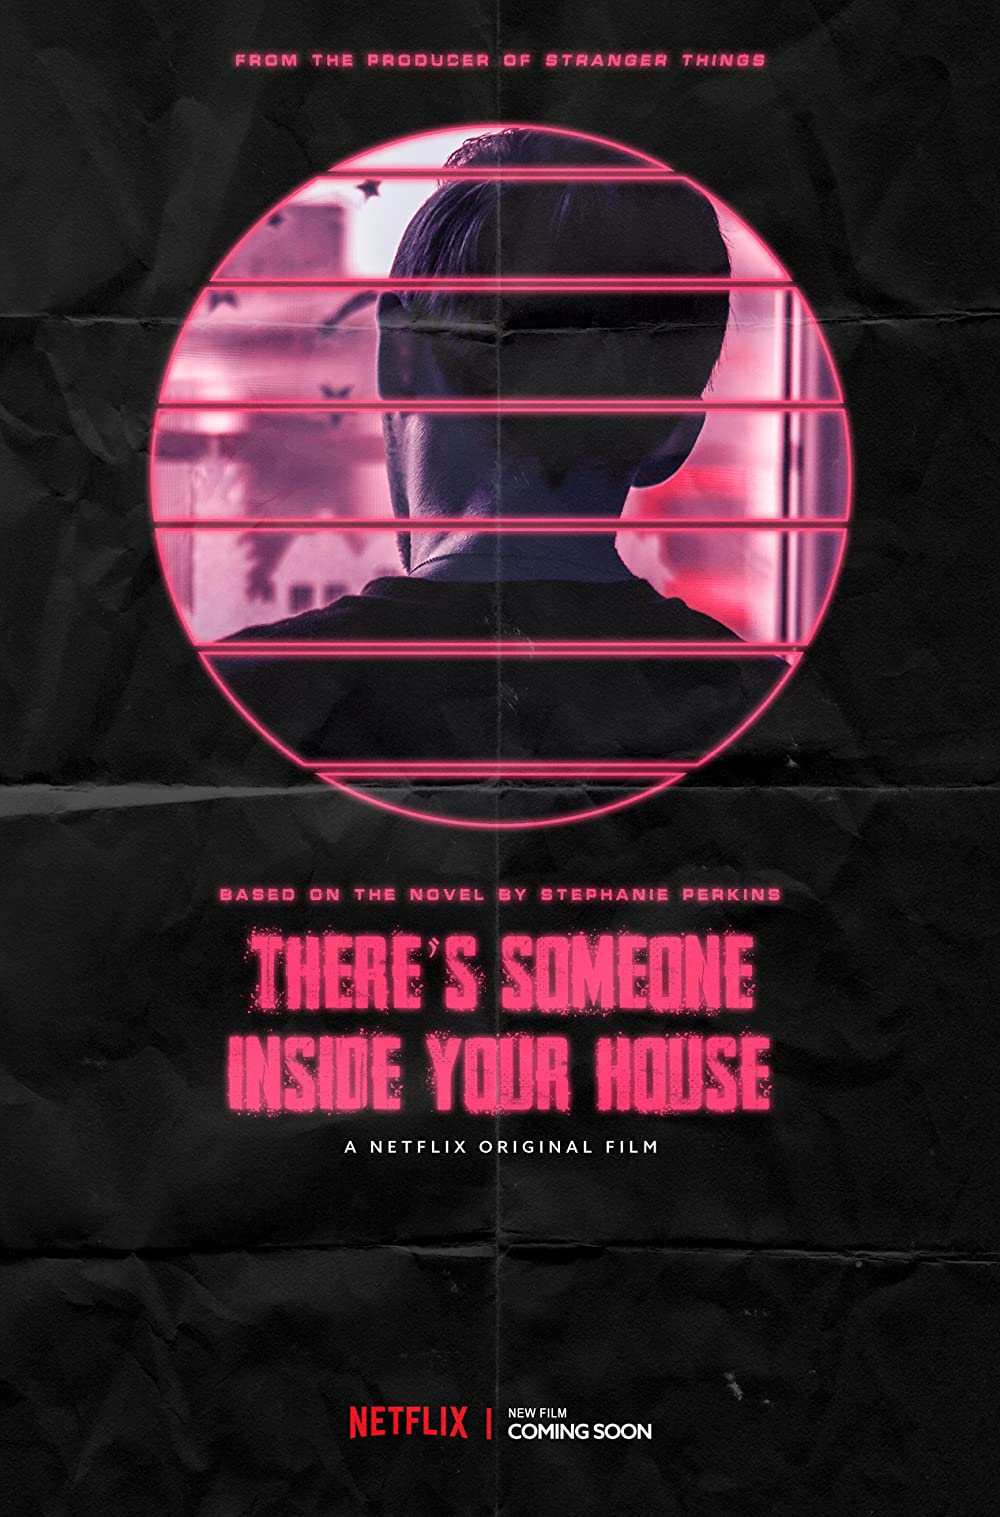 Download Filme There's Someone Inside Your House Torrent 2021 Qualidade Hd